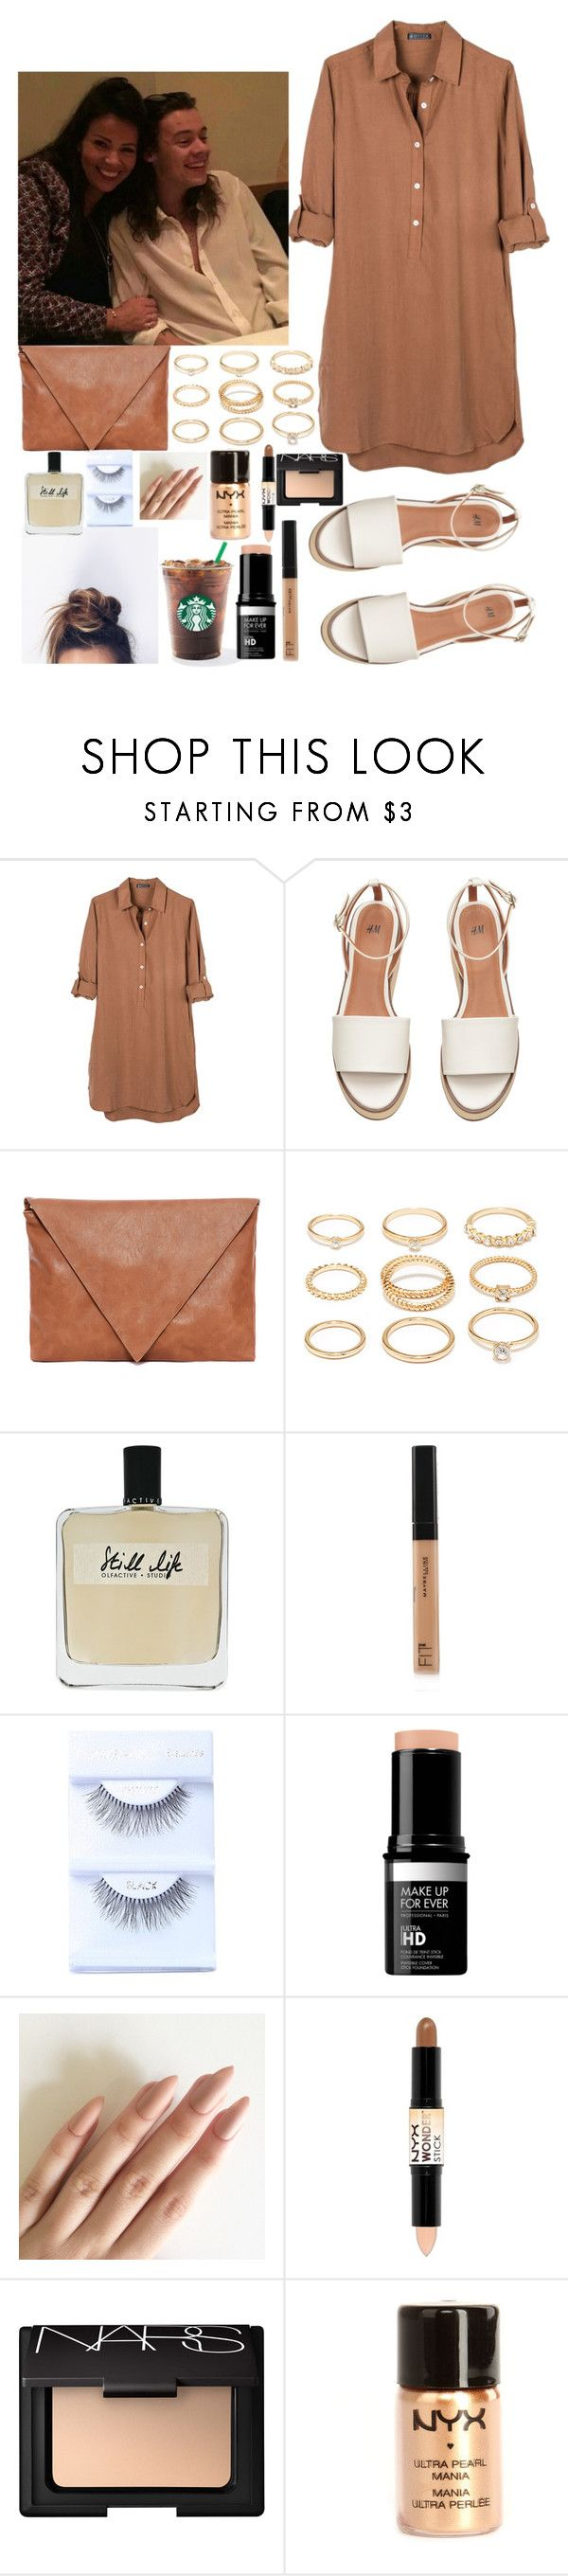 """Dinner with Harry and Anne"" by kennedey-lynn-freeman ❤ liked on Polyvore featuring United by Blue, Pull&Bear, Forever 21, Olfactive Studio, Maybelline, NYX and NARS Cosmetics"